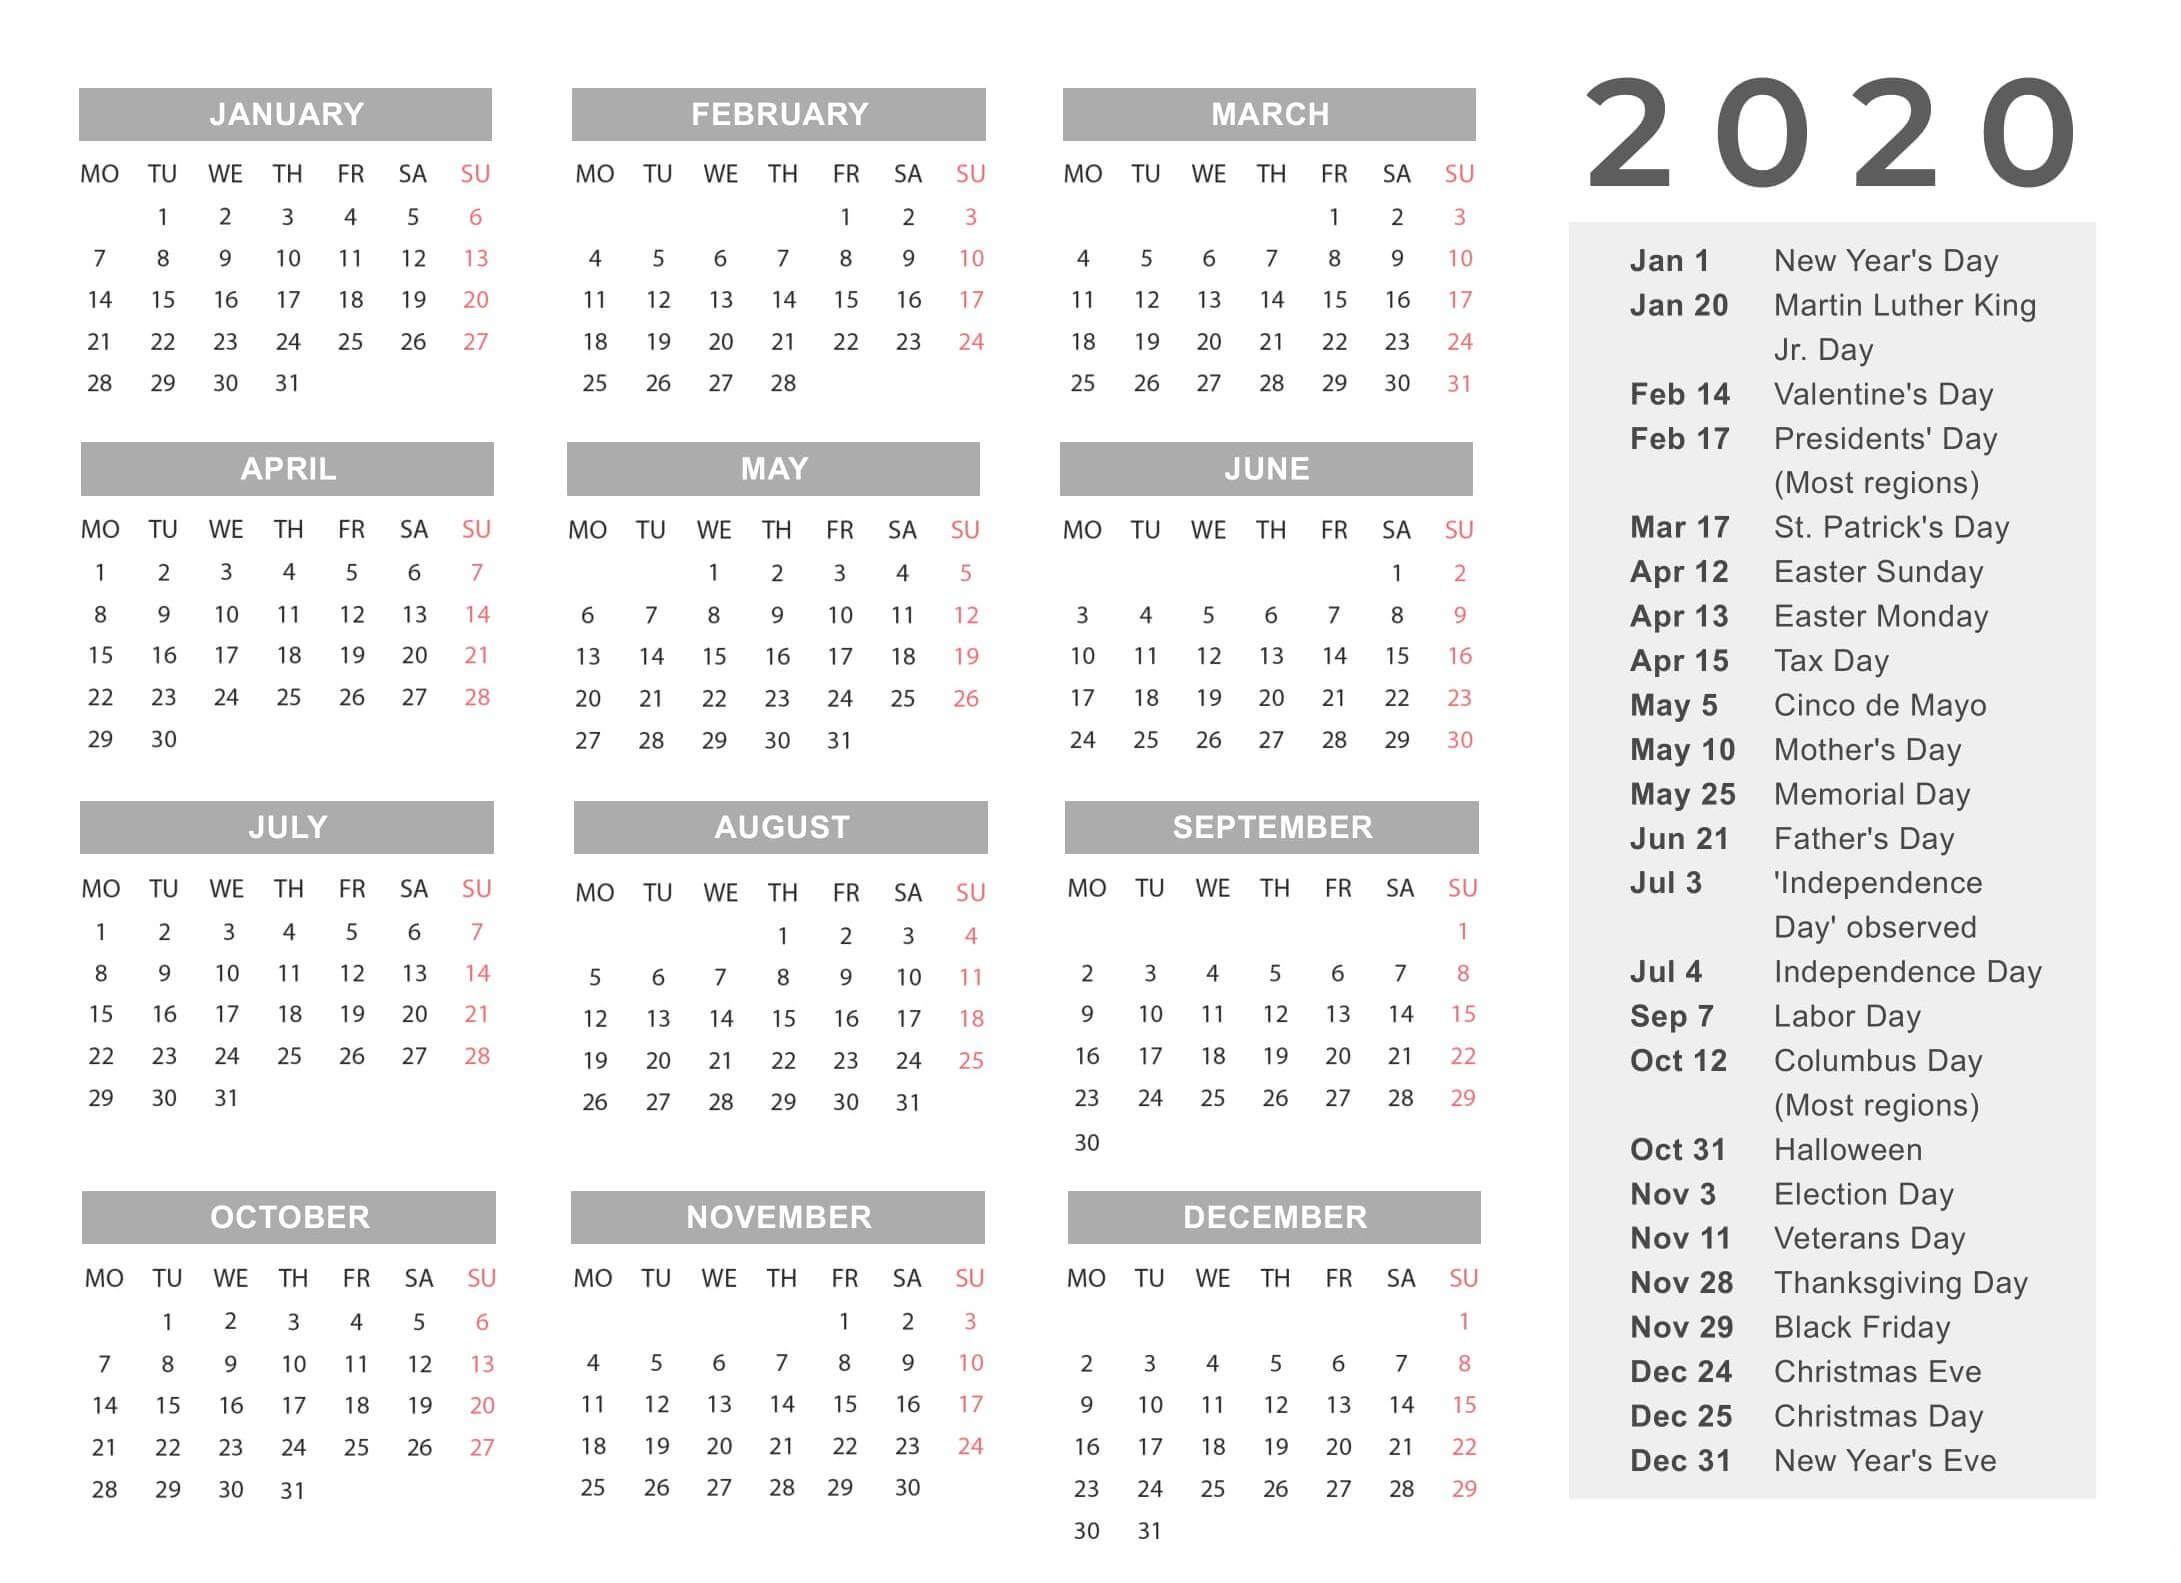 Yearly Calendar Template With Notes 2020 - 2019 Calendars pertaining to 2020 Yearly Calendar With Holidays Printable